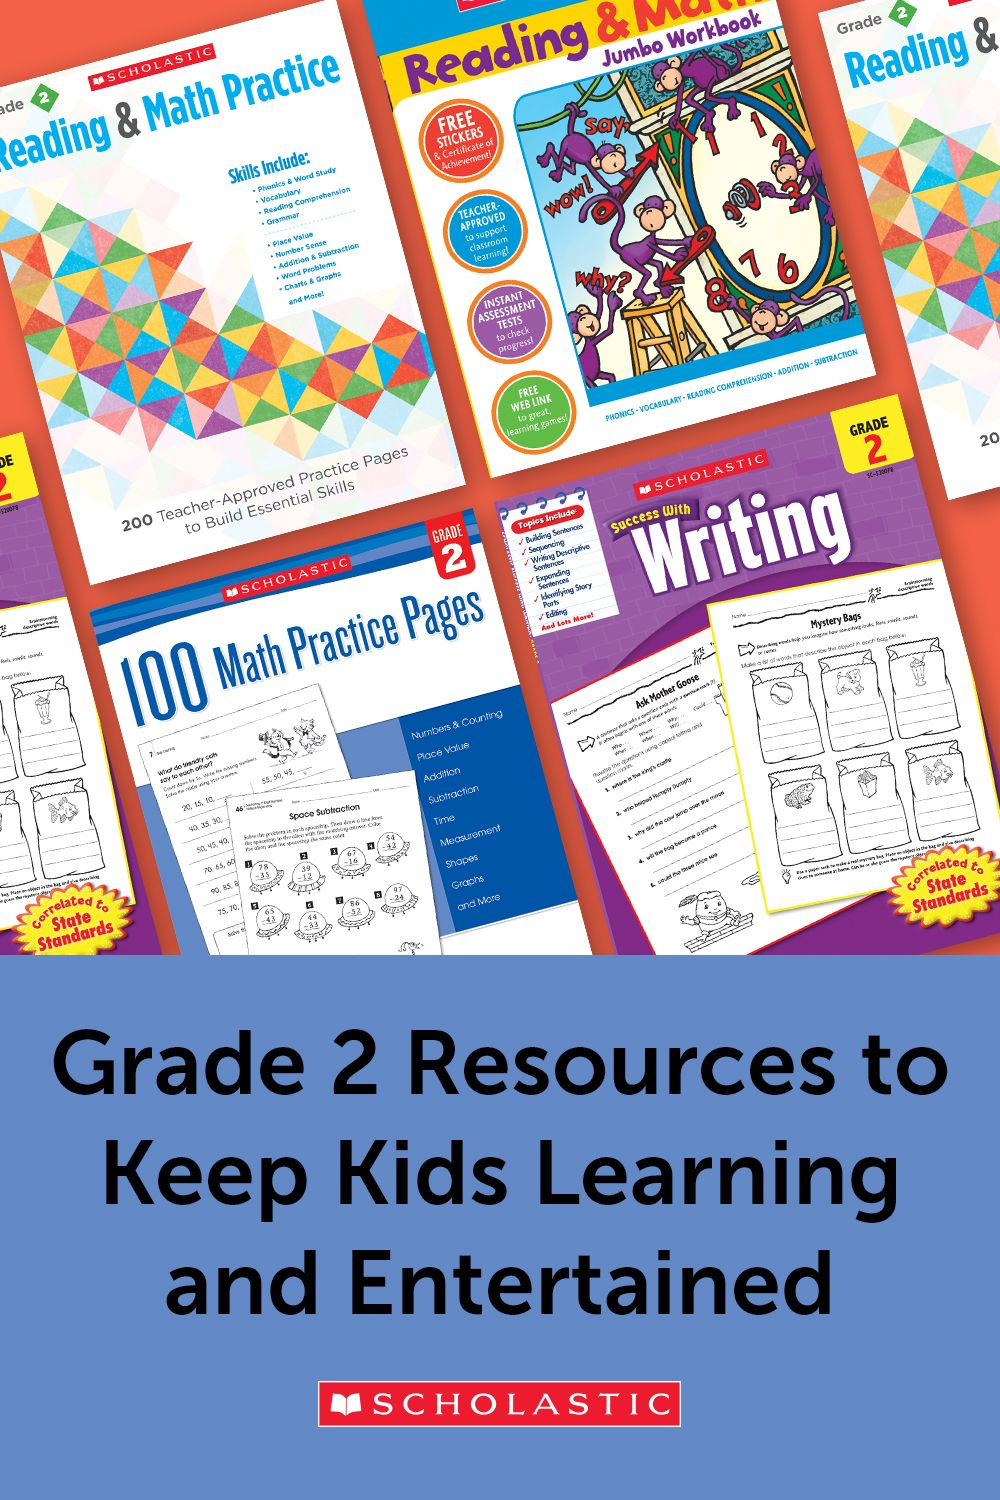 A Collection Of Scholastic Workbooks And Activities To Keep Second Graders Learning Engaged And Entertained While At In 2020 School Closures Math Practices Workbook